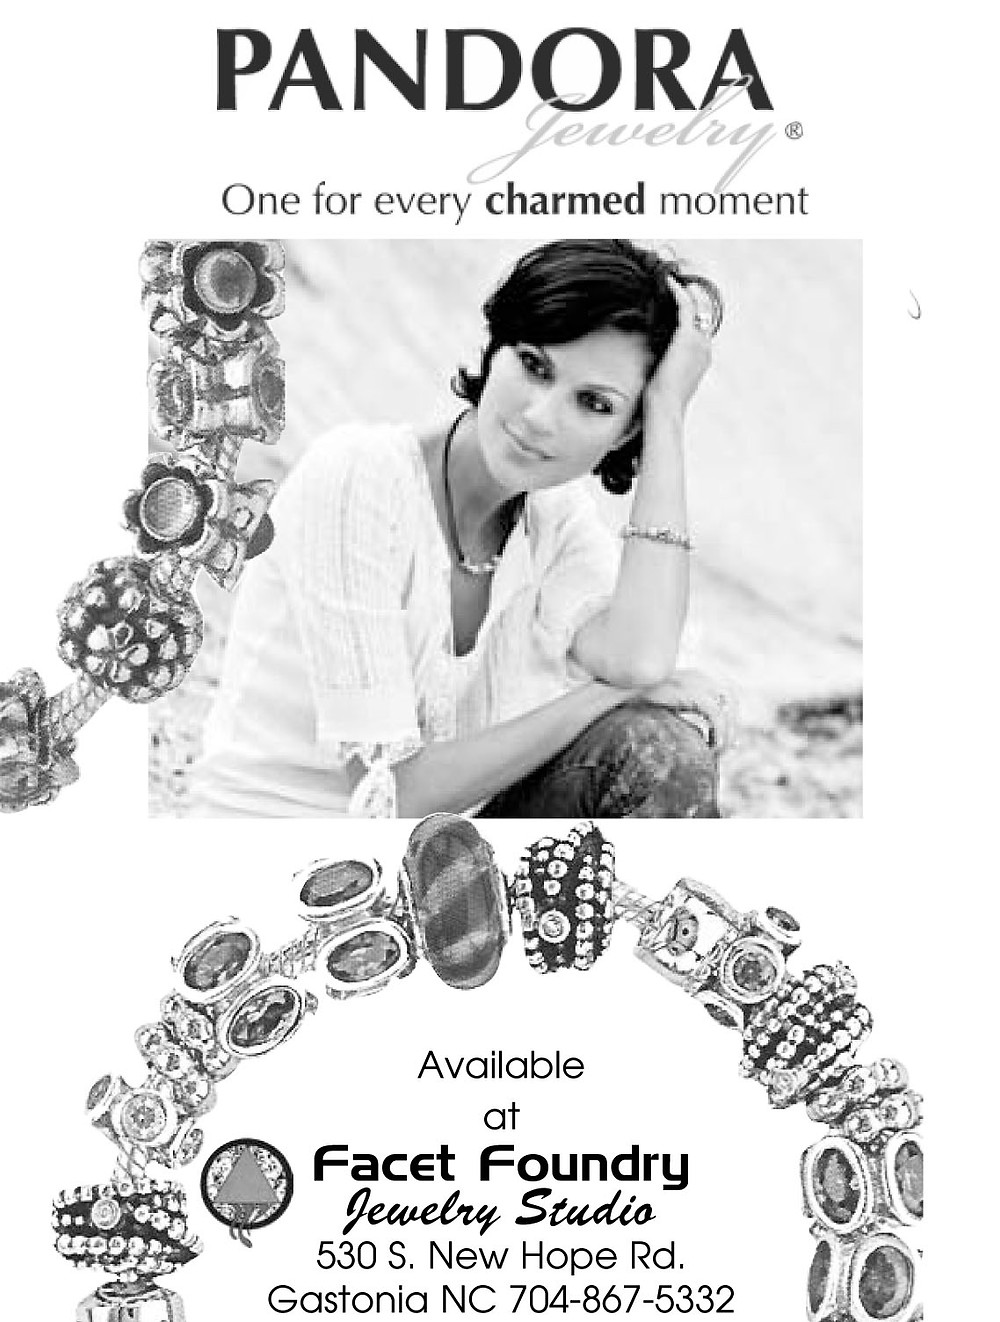 2006 Pandora Newspaper Ad